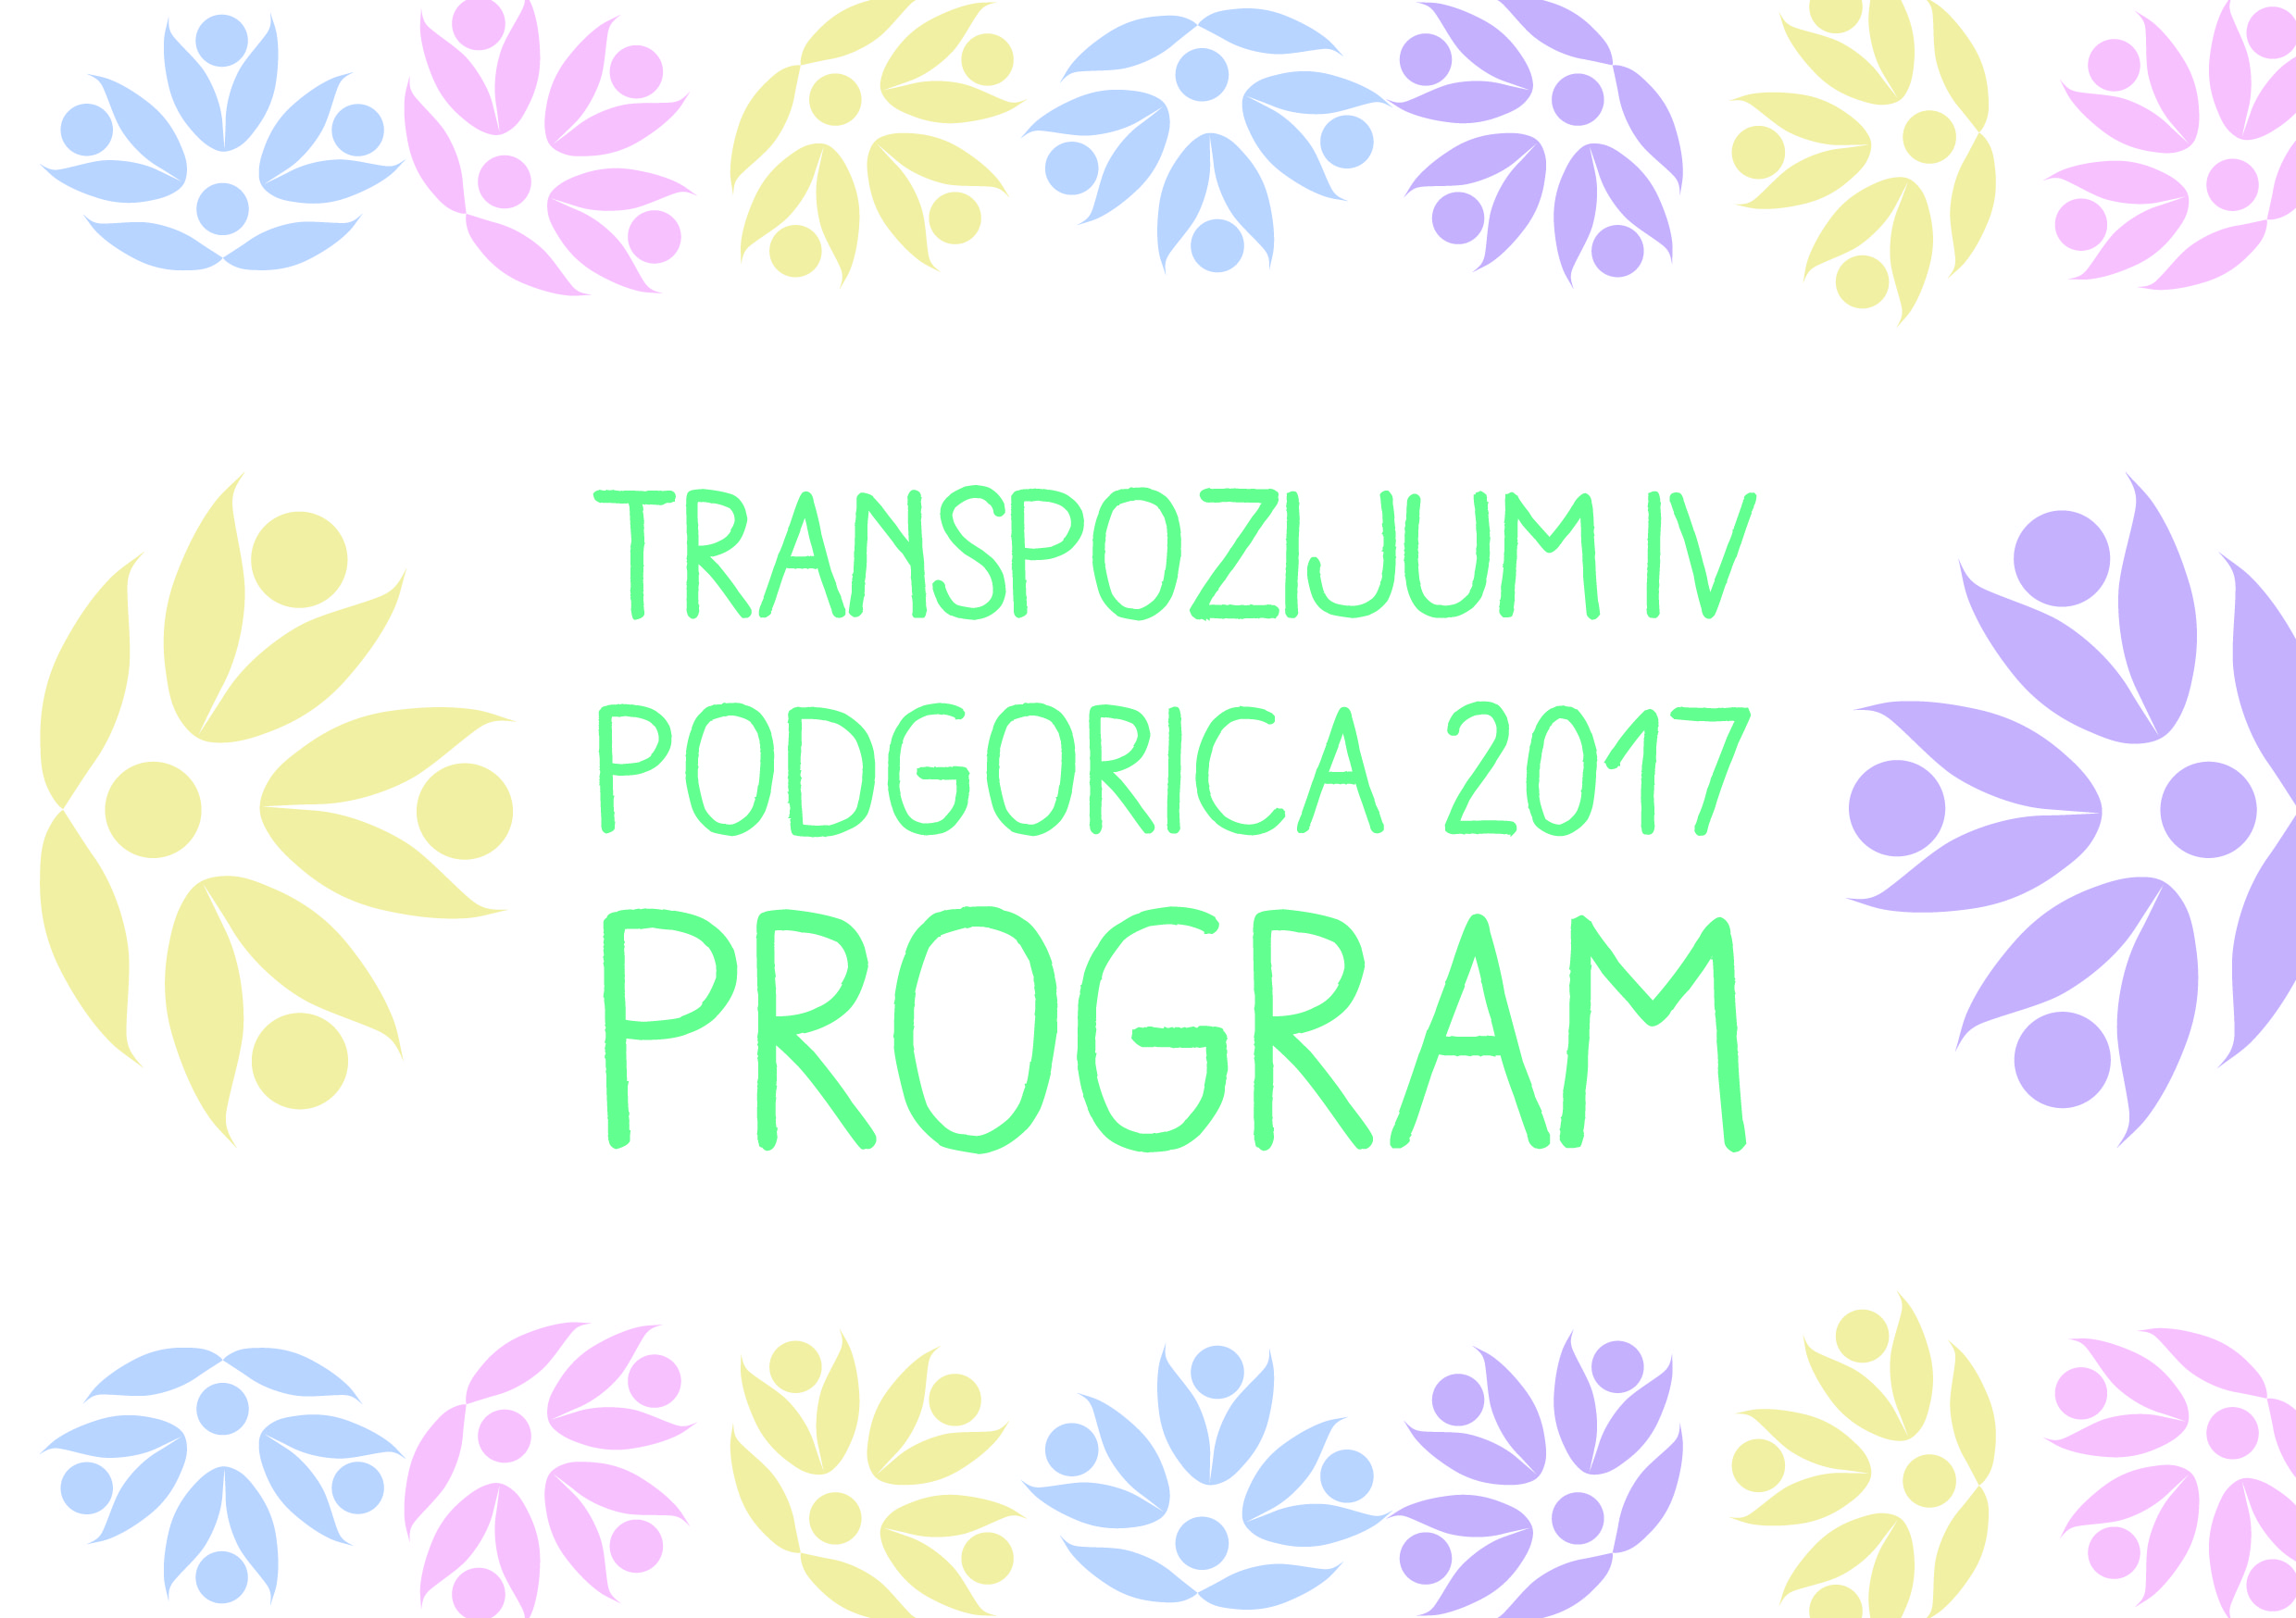 Program bez lokacije FINAL inter change.1 01